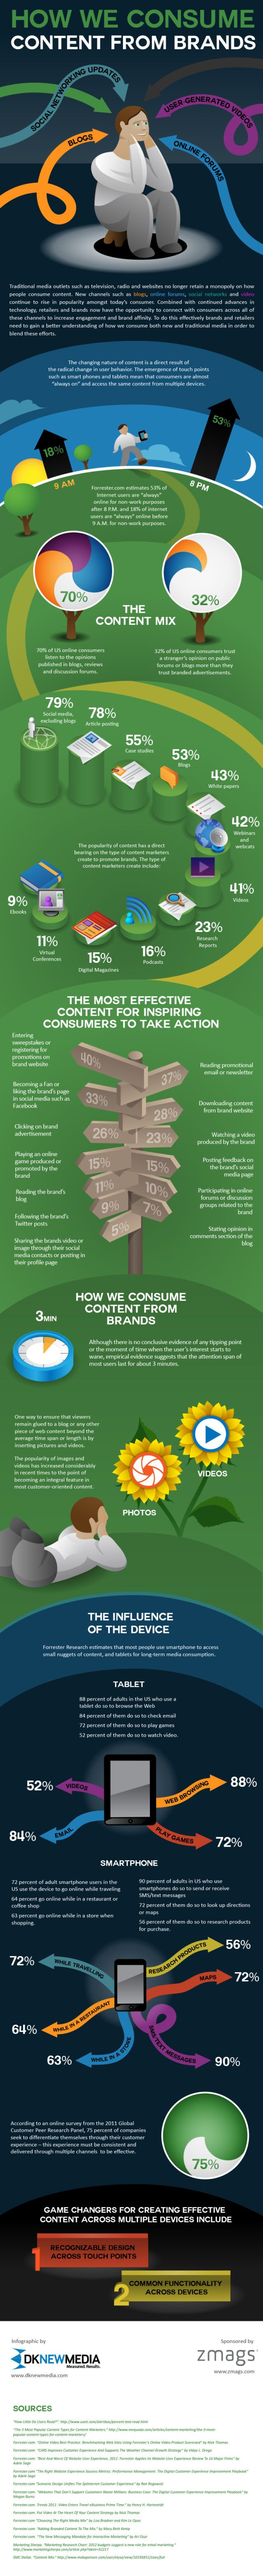 Zmags How We Consume Content From Brands Infographic